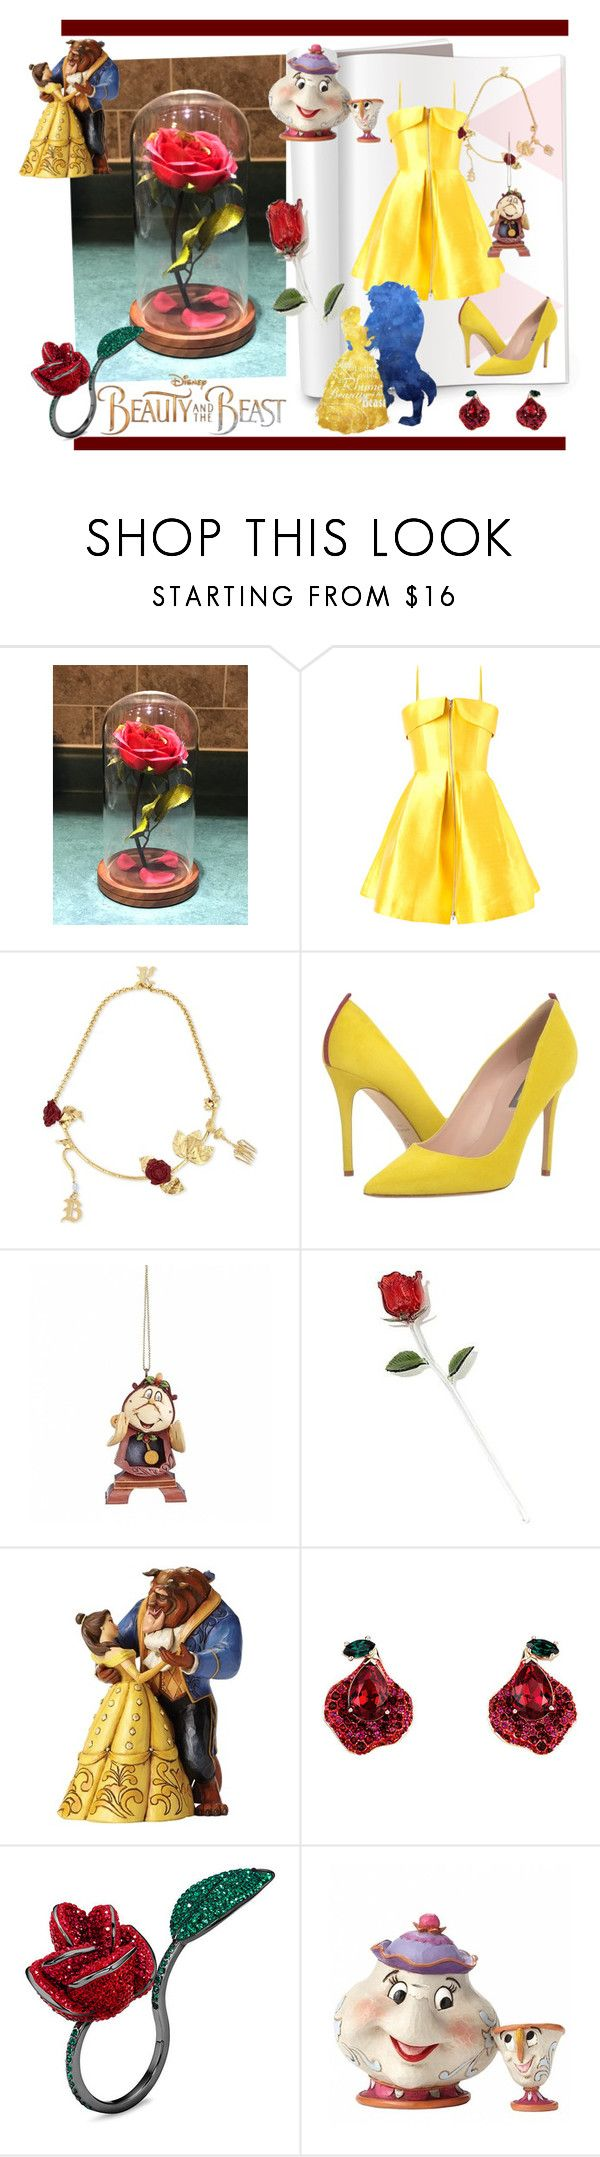 """""""Beauty and the beast"""" by samy-lady on Polyvore featuring moda, Disney, Alex Perry, Christopher Kane, SJP, BeautyandtheBeast y contestentry"""